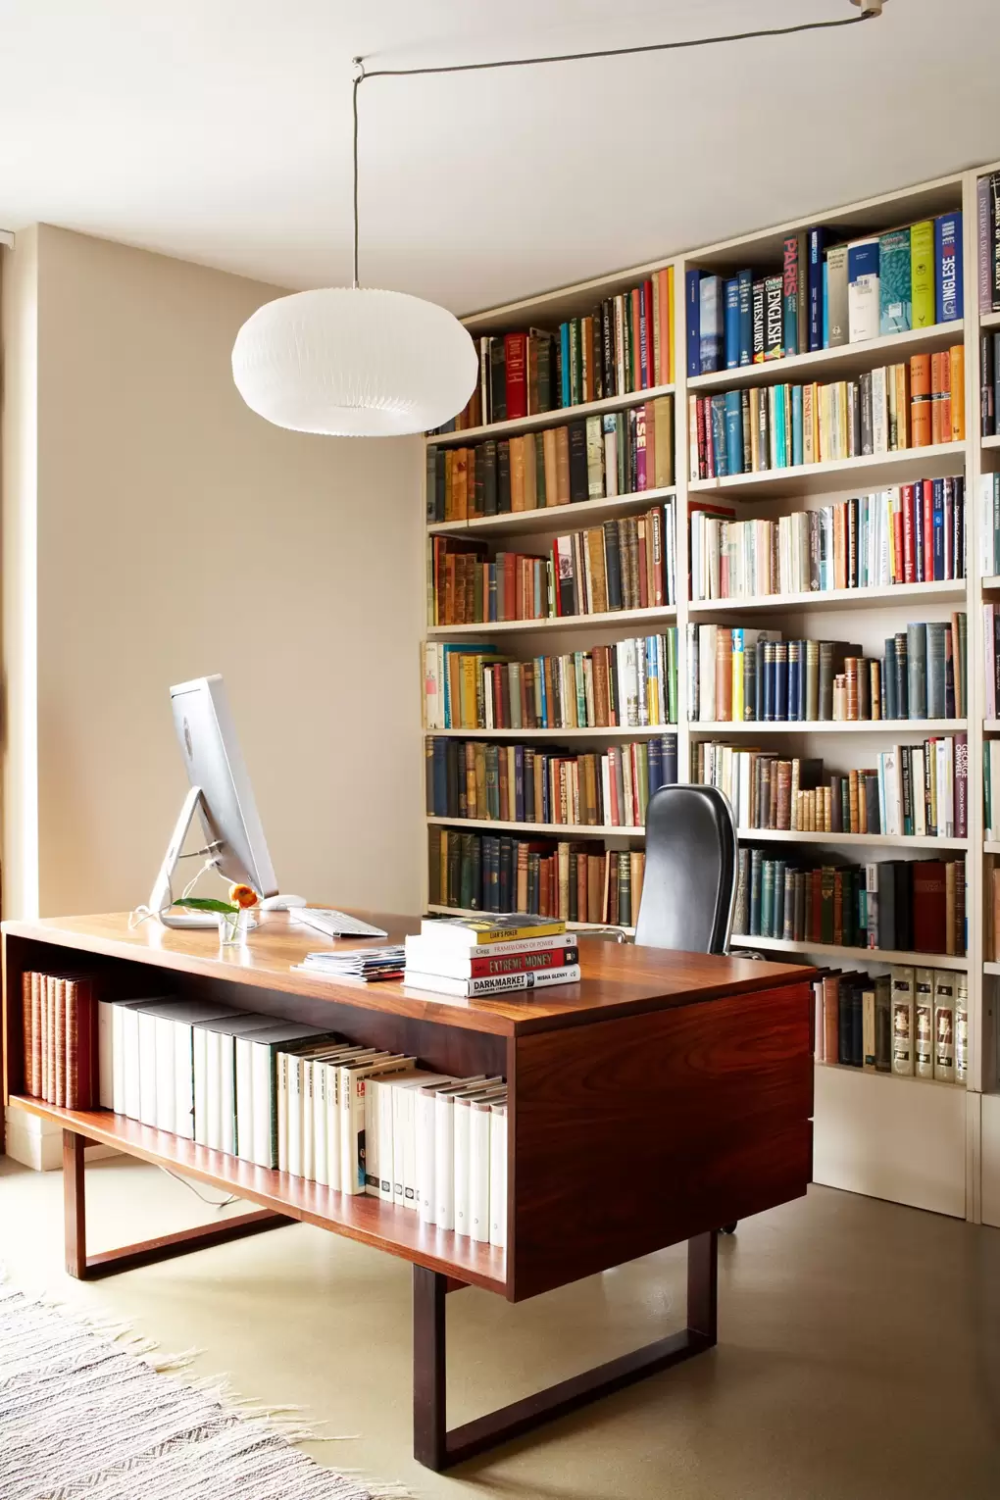 95 ways to decorate a flat